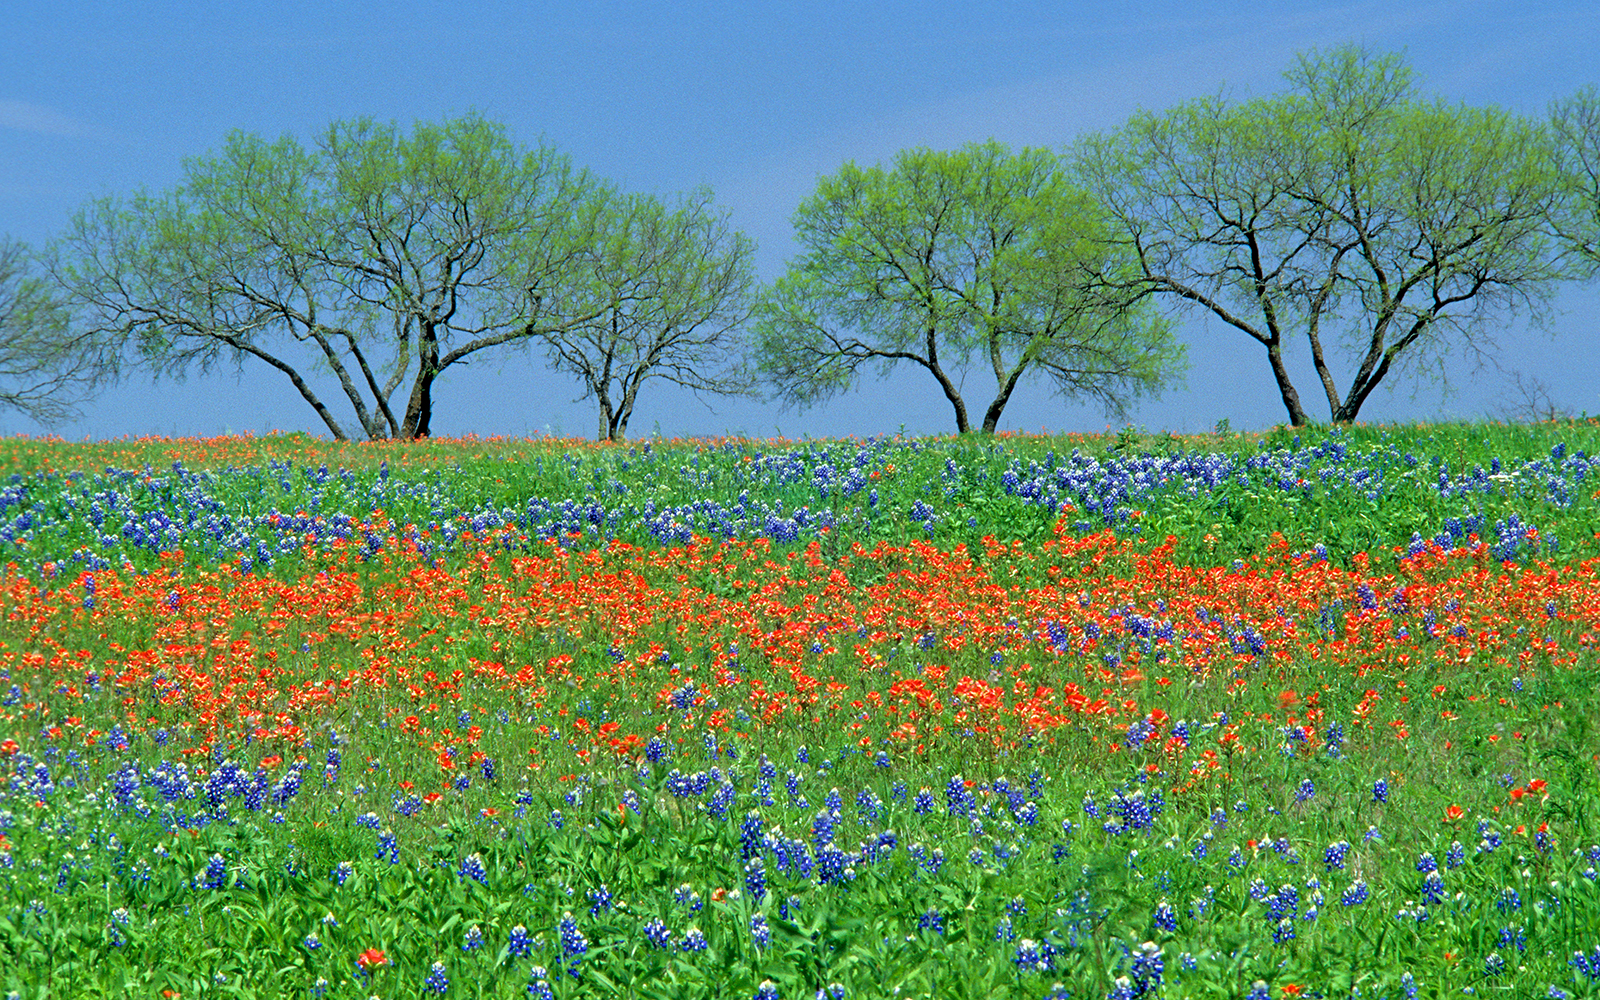 Field of spring wildflowers, Texas bluebonnets and Texas paintbrush, with four mesquite trees in Texas hill country.